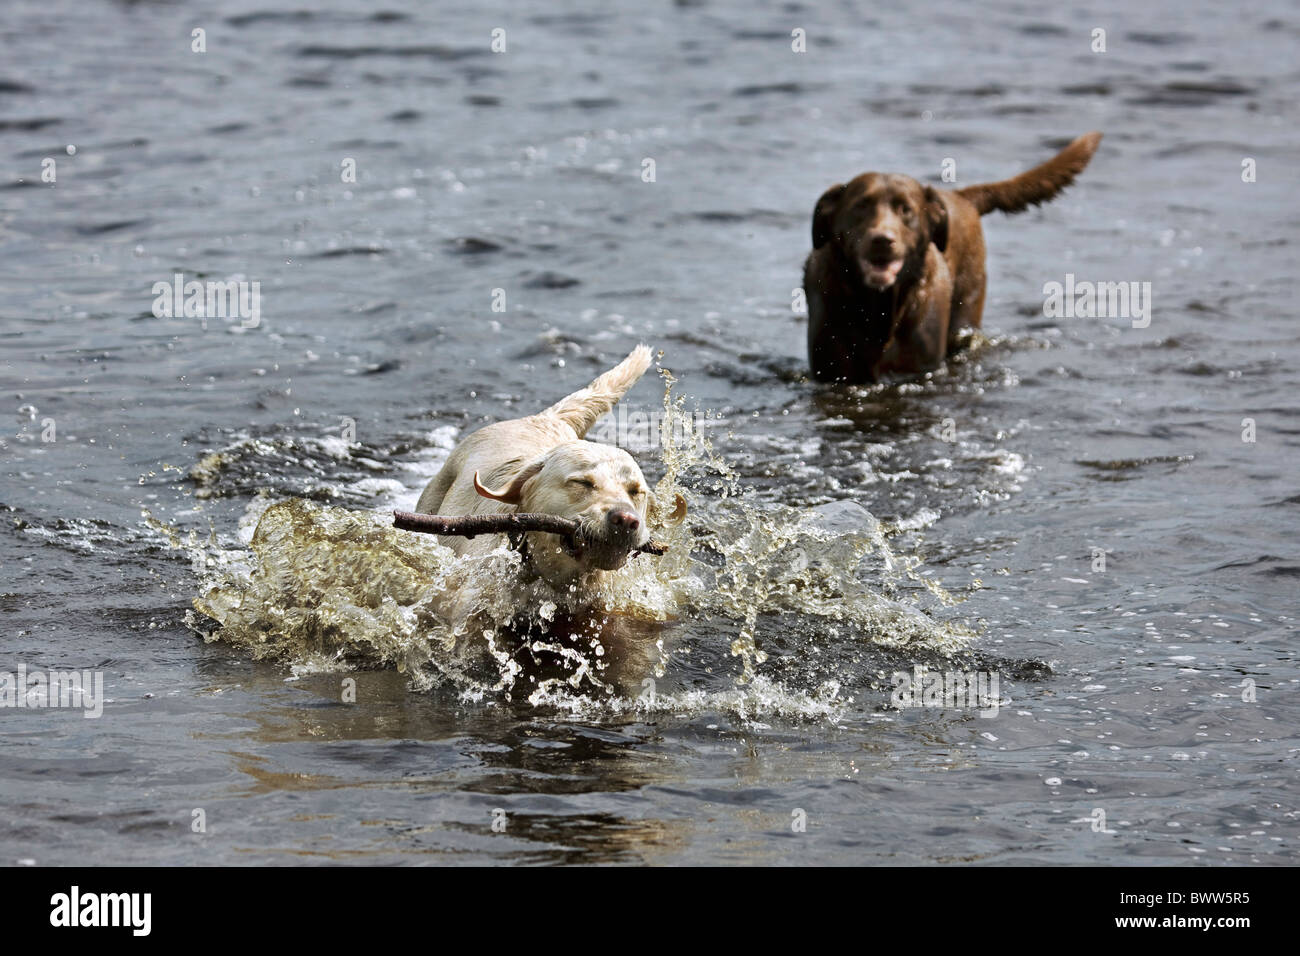 Golden retriever (Canis lupus familiaris) fetching stick from pond - Stock Image